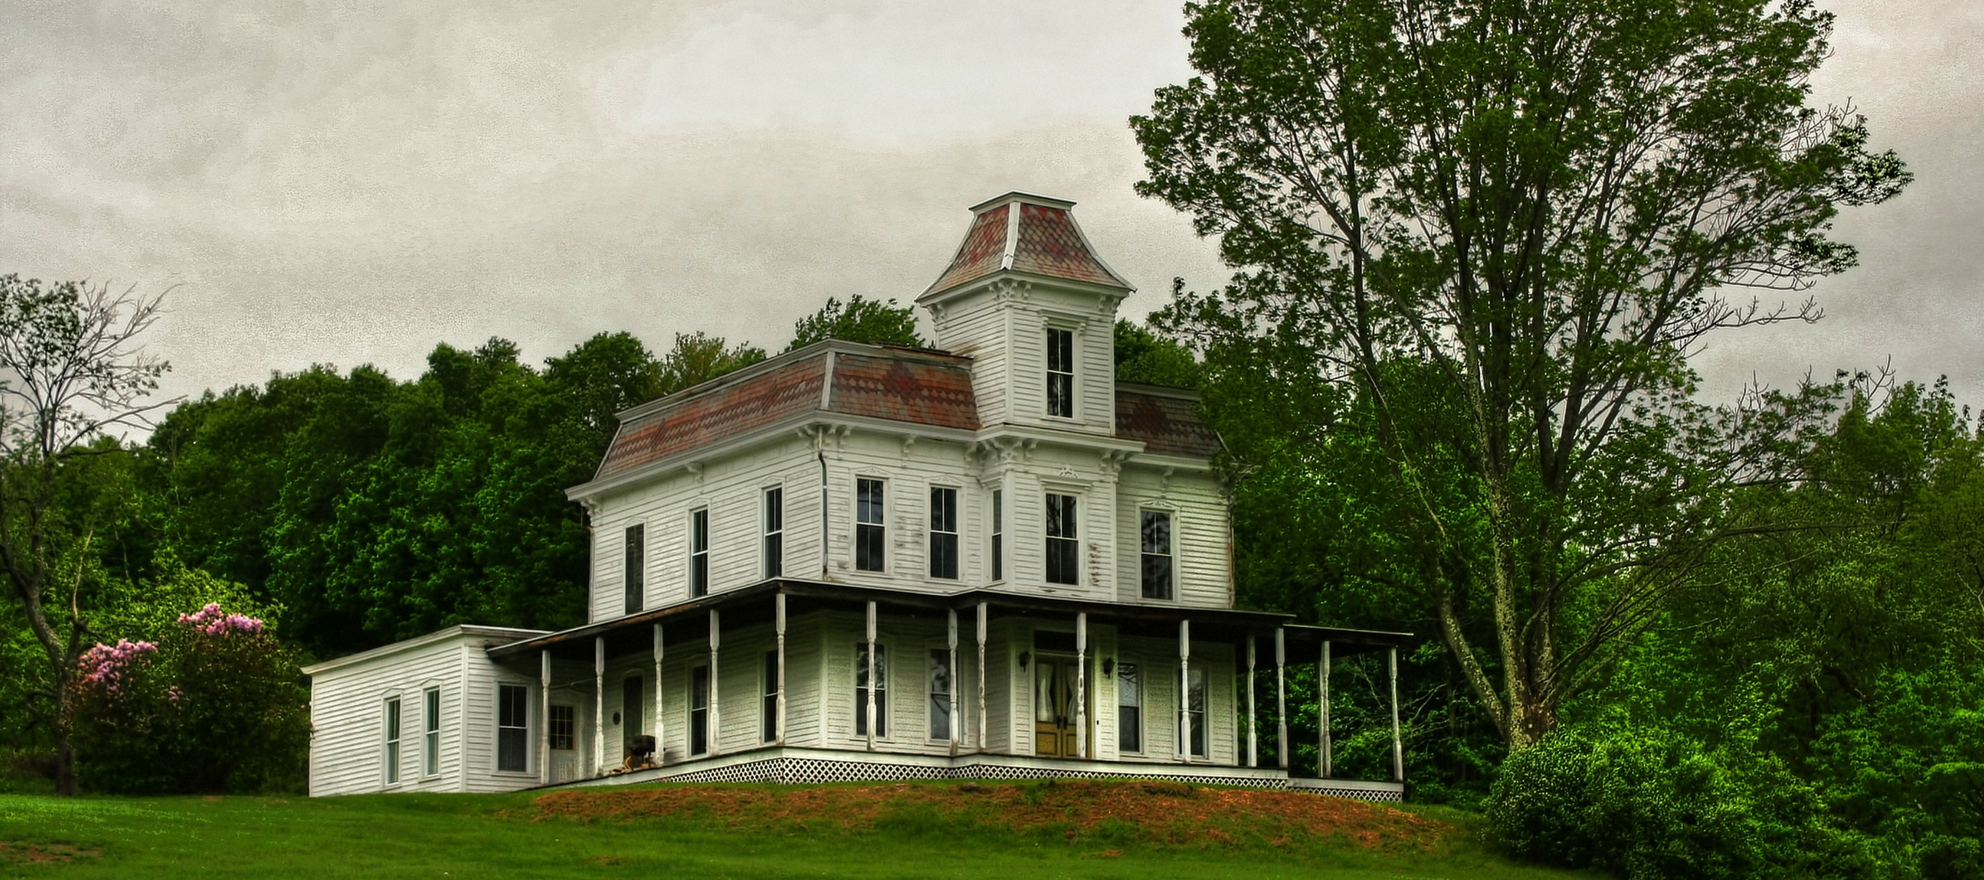 Selling A Haunted House? Have No Fear